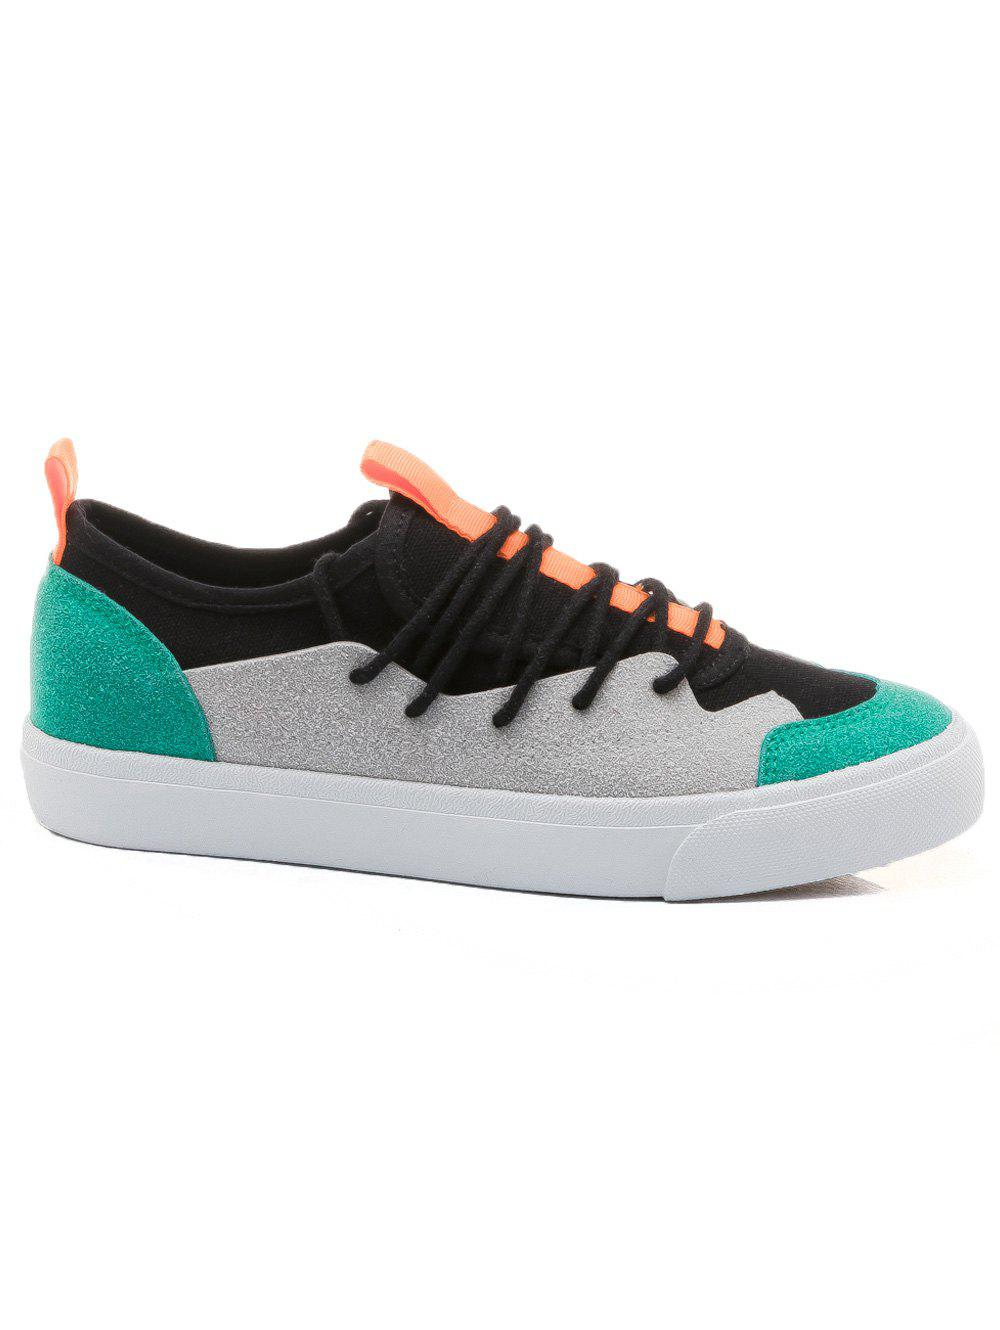 Color Block Low Heel Skate Shoes - GREEN 38